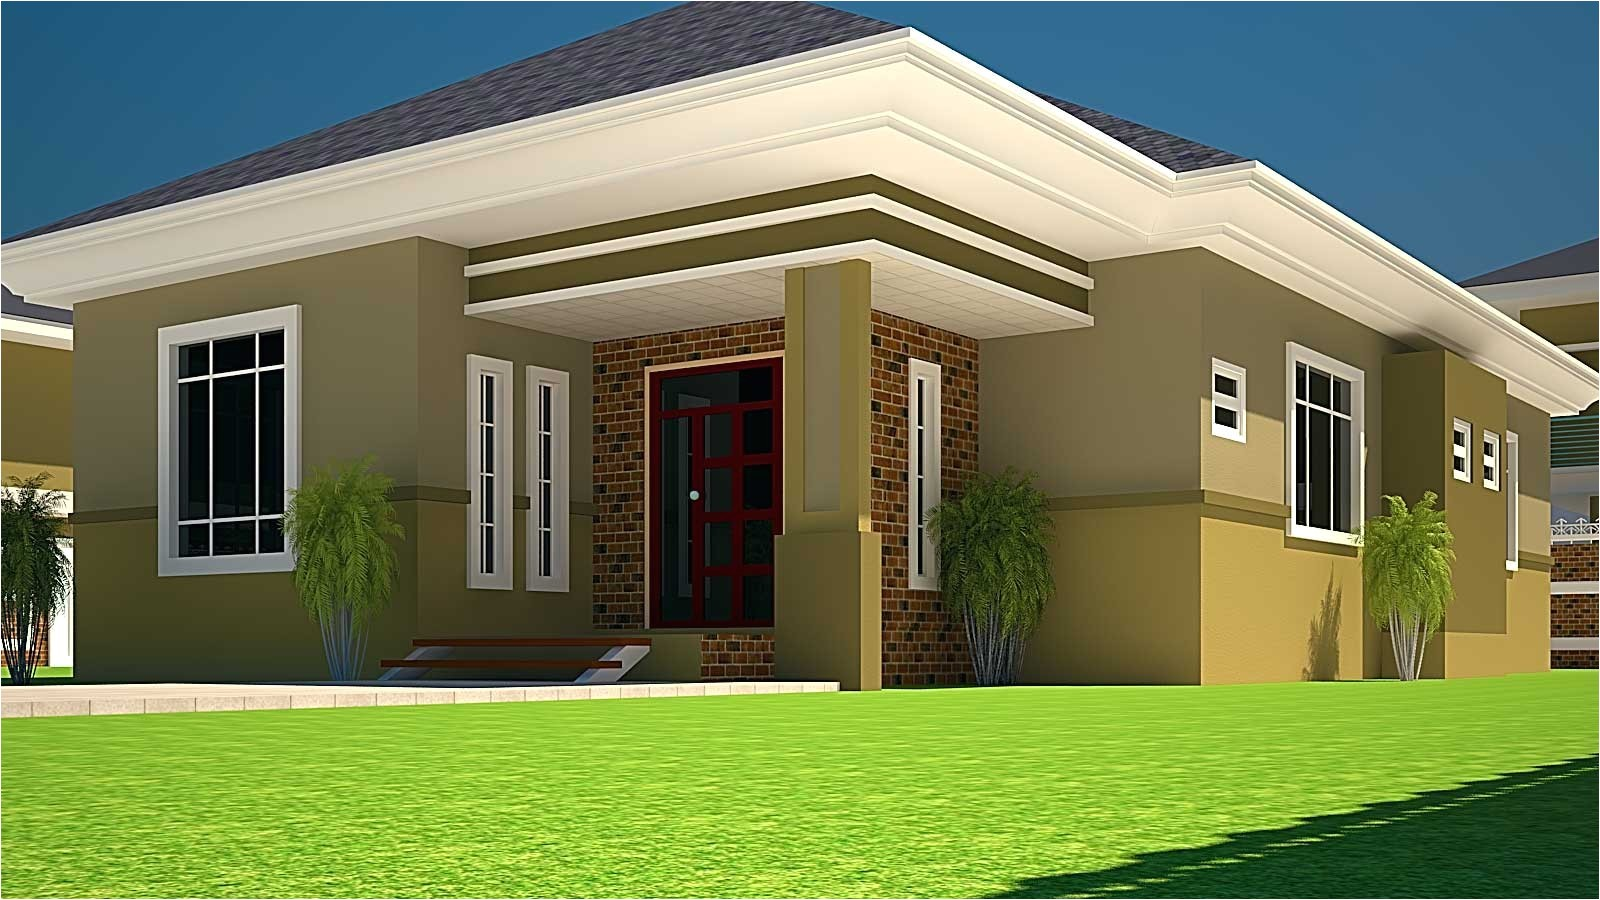 3 bedroom house designs and floor plans